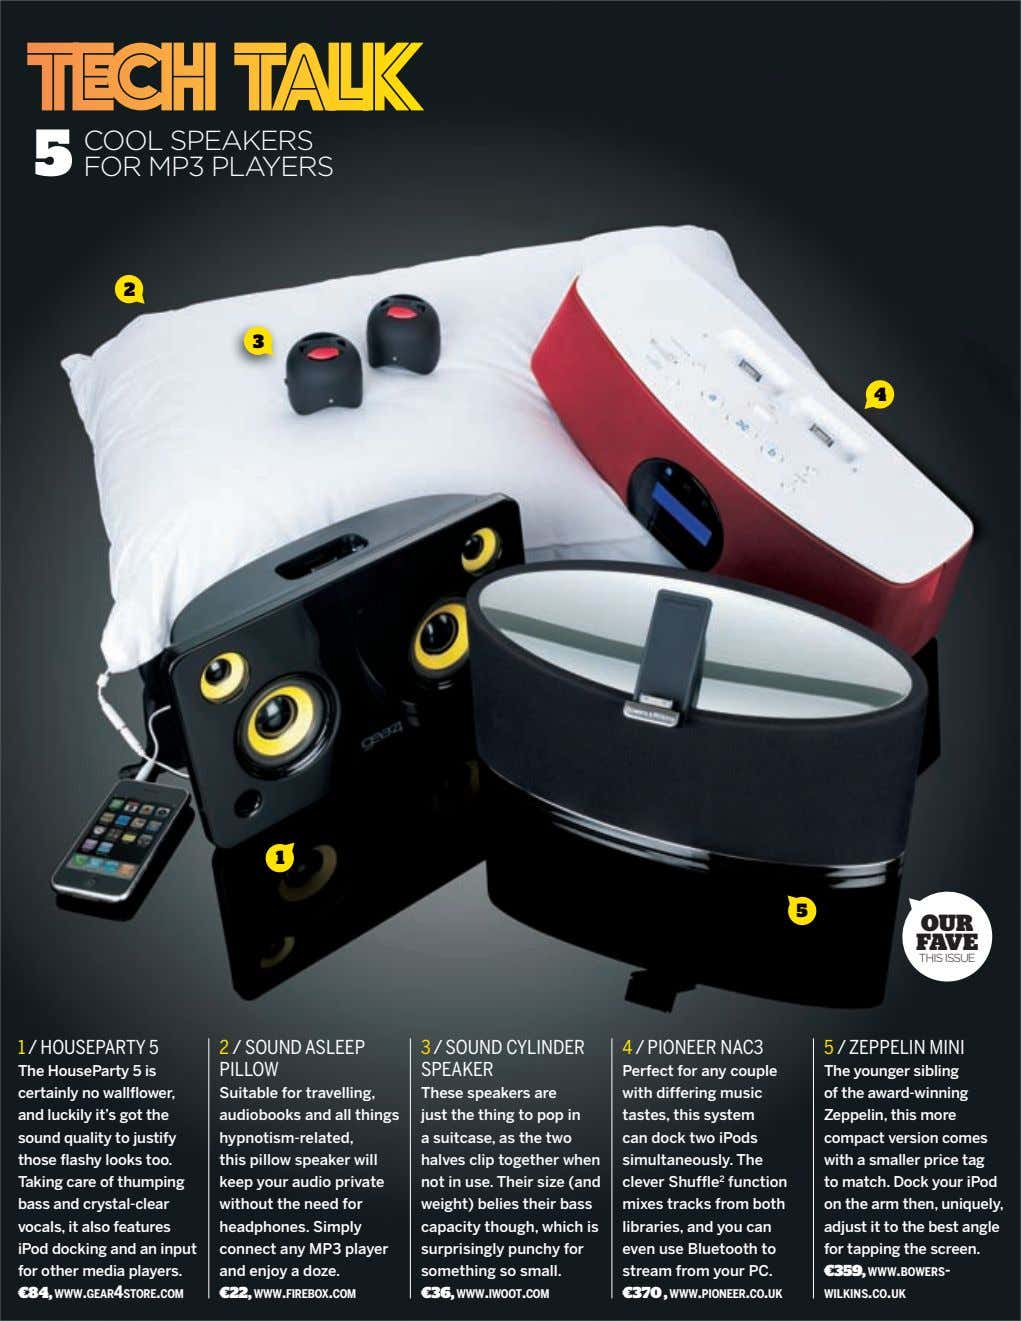 COOL SPEAKERS FOR MP3 PLAYERS 2 3 4 1 5 OUR FAVE THIS ISSUE 1